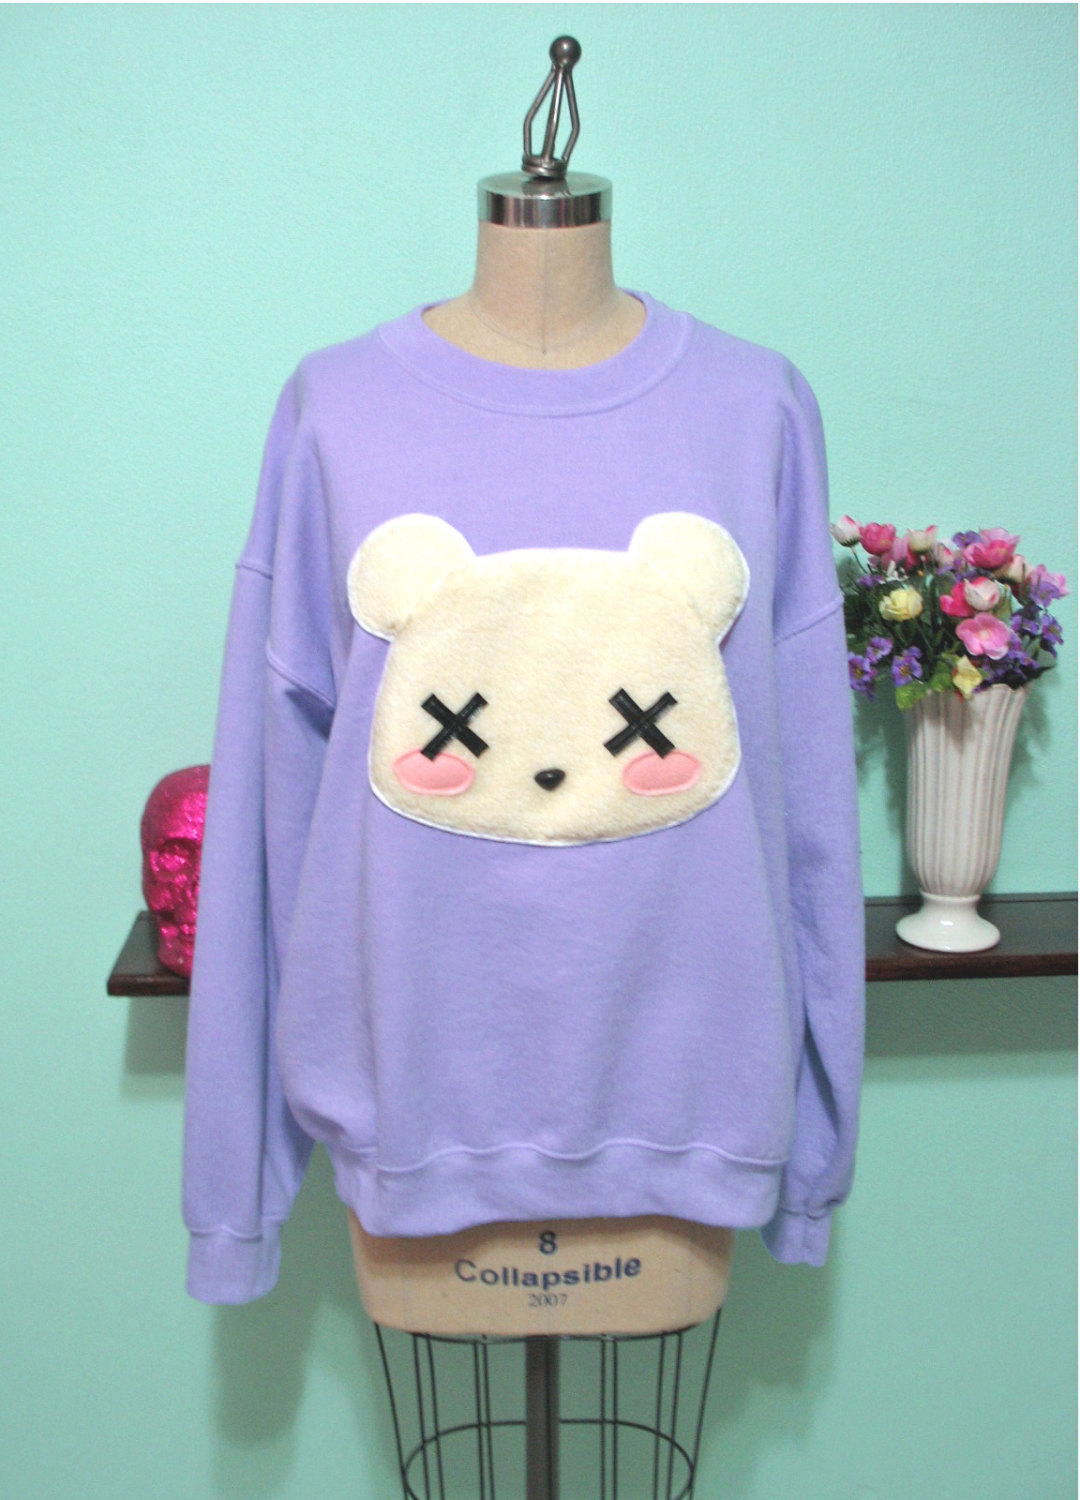 Goth Kawaii Grunge Deaddy Bear - Dead Teddy Bear Oversized Sweatshirt